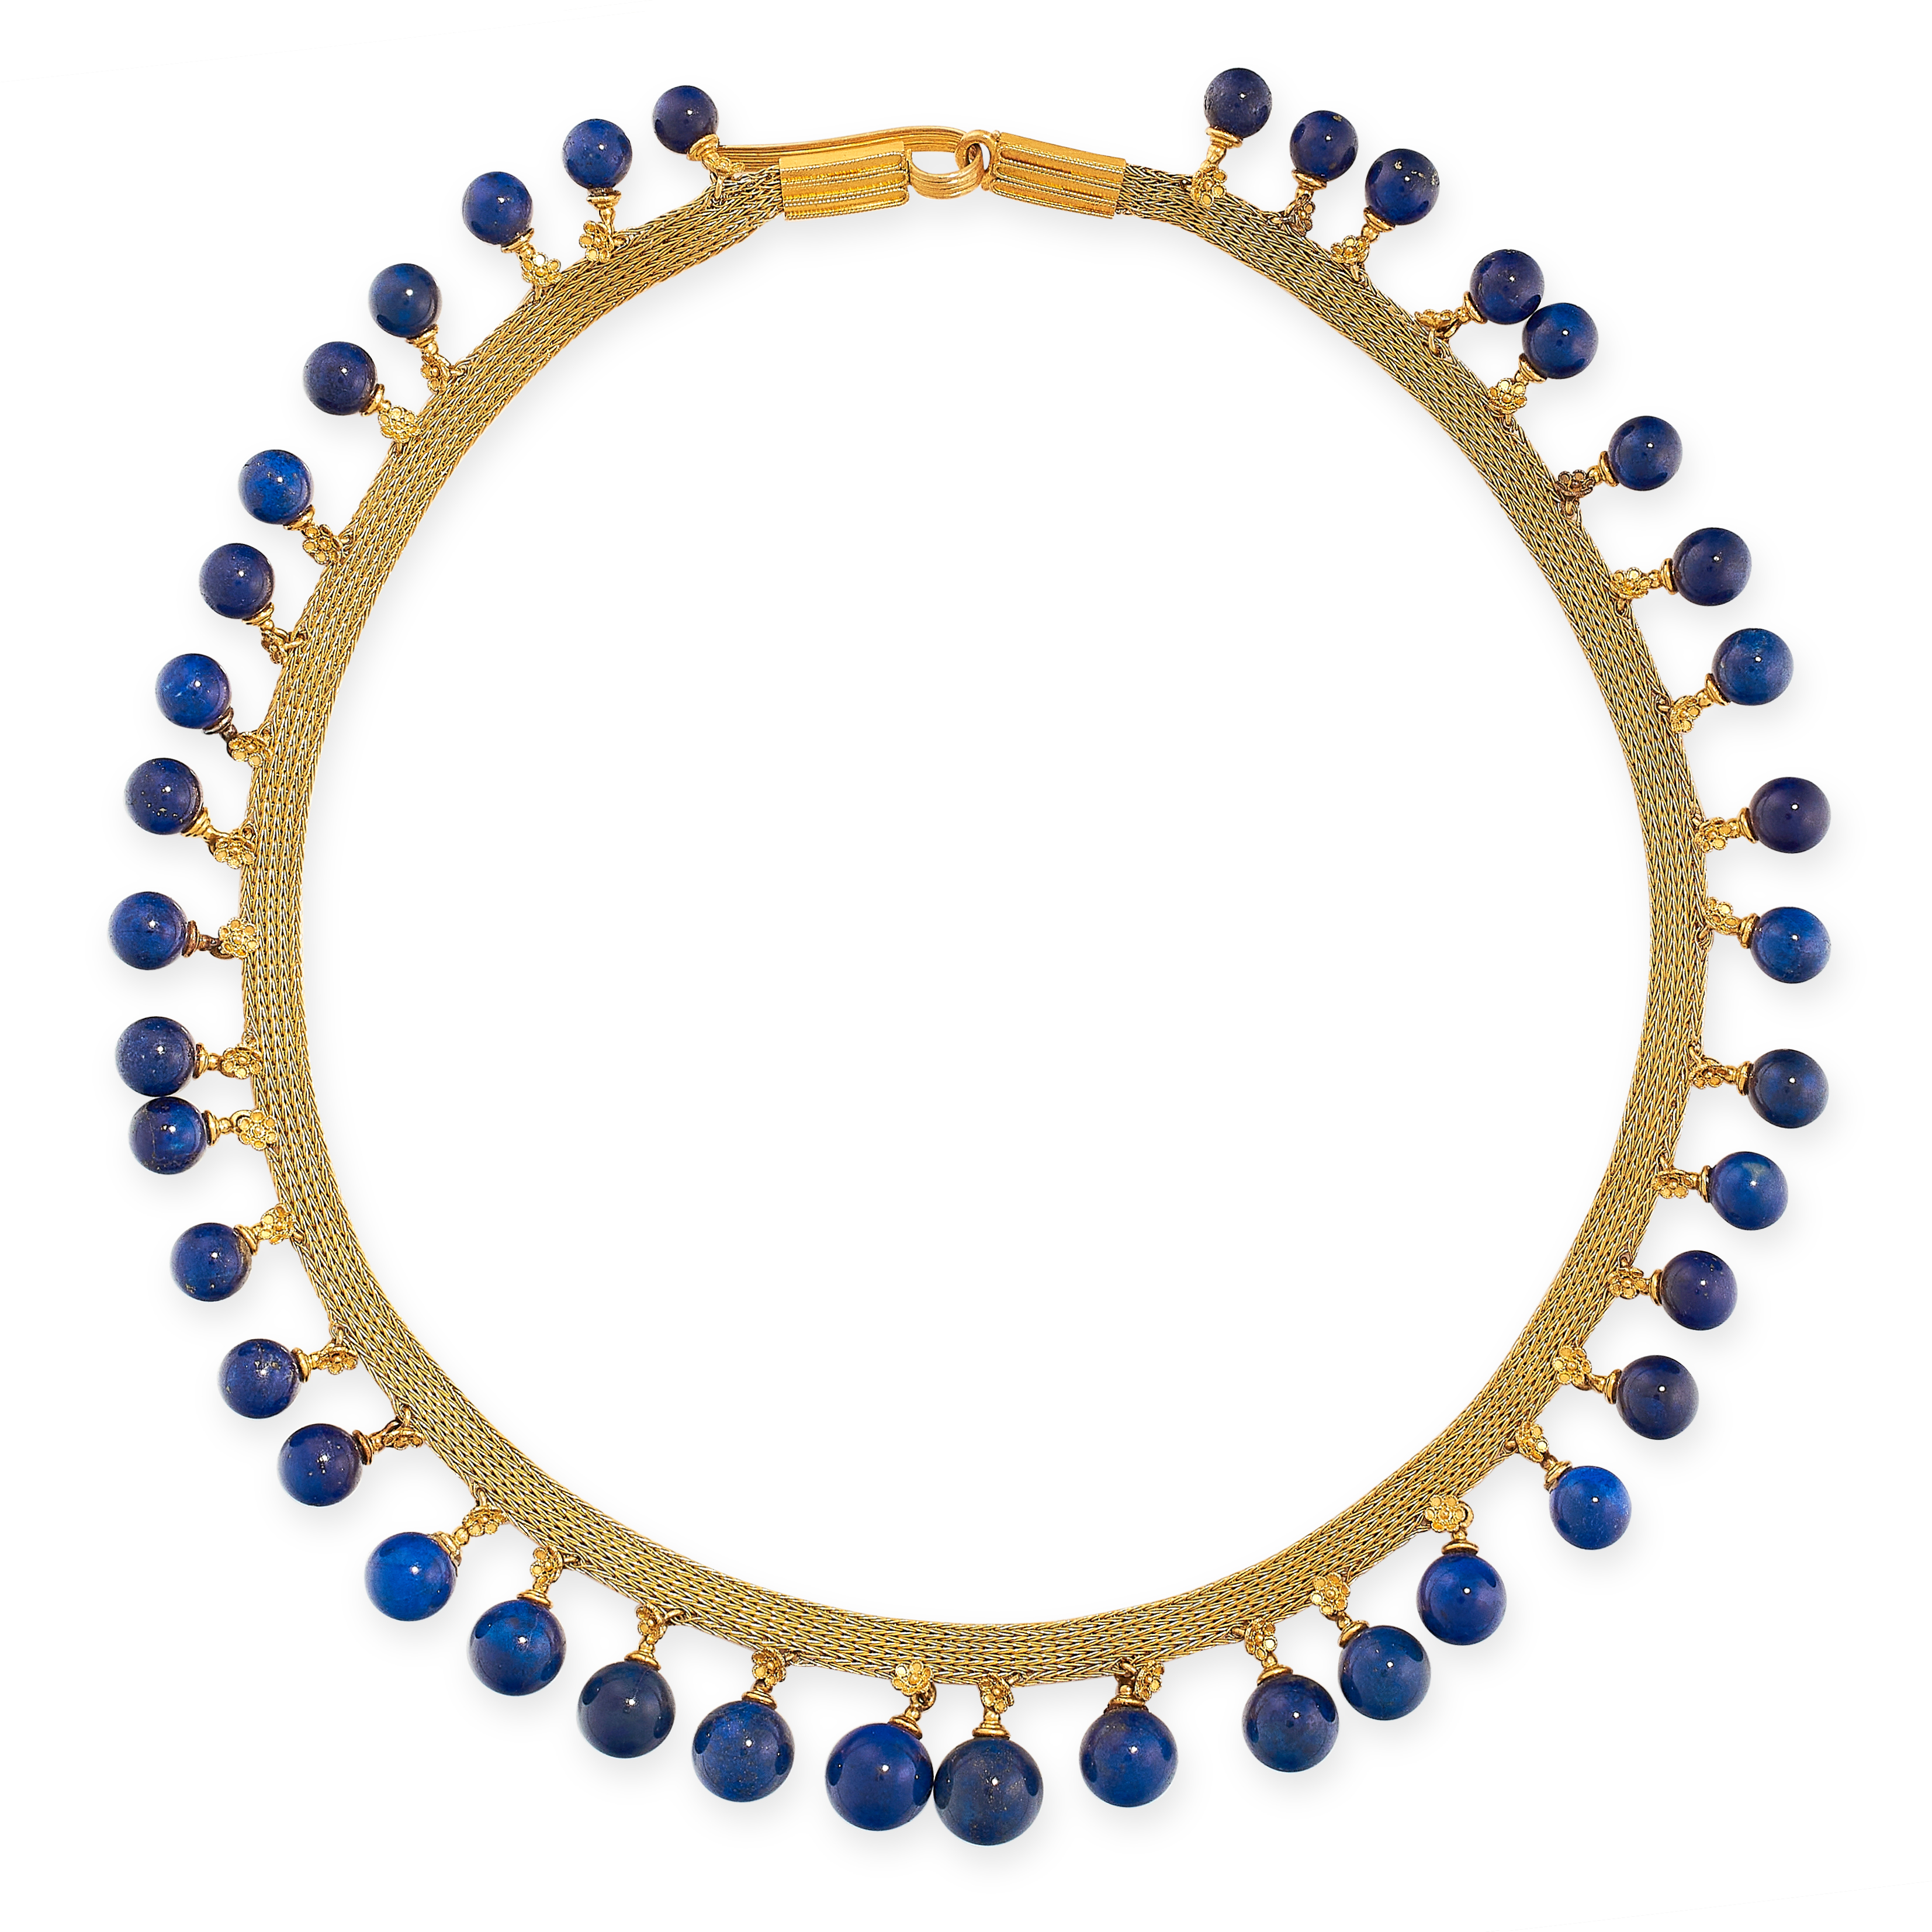 ANTIQUE LAPIS LAUZLI COLLAR NECKLACE, 19TH CENTURY in yellow gold, in the Etruscan revival manner,